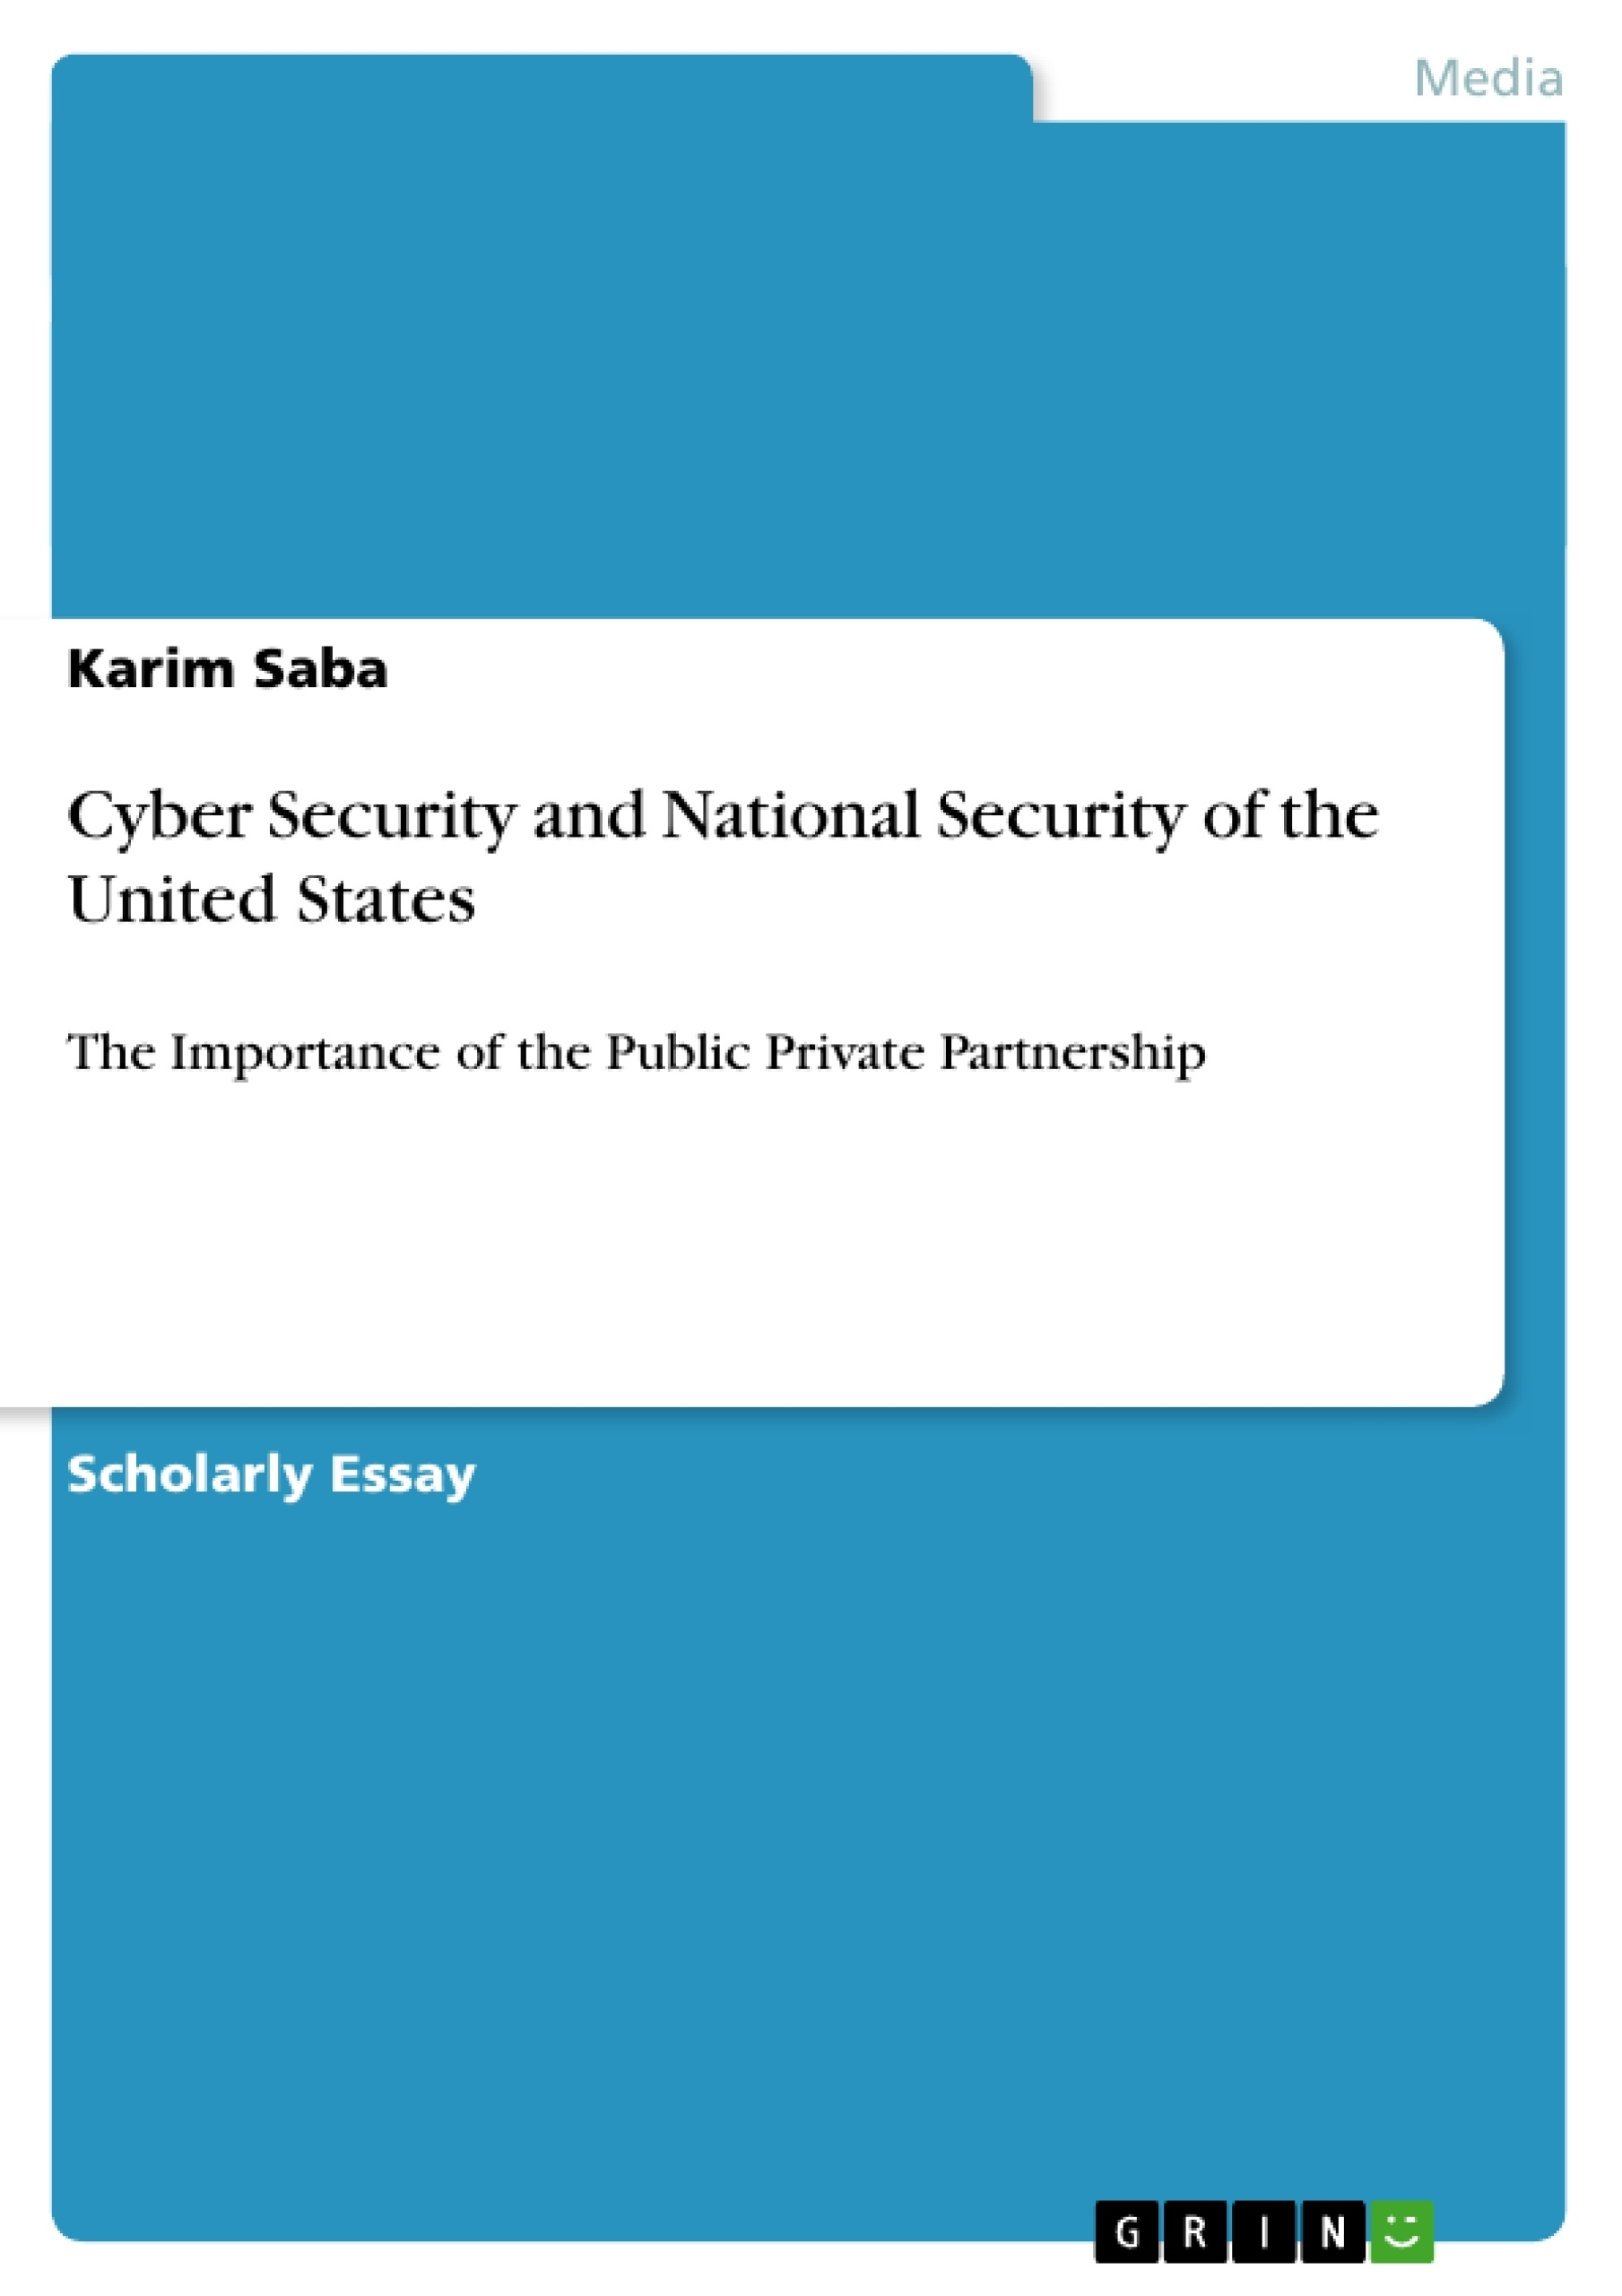 Title: Cyber Security and National Security of the United States